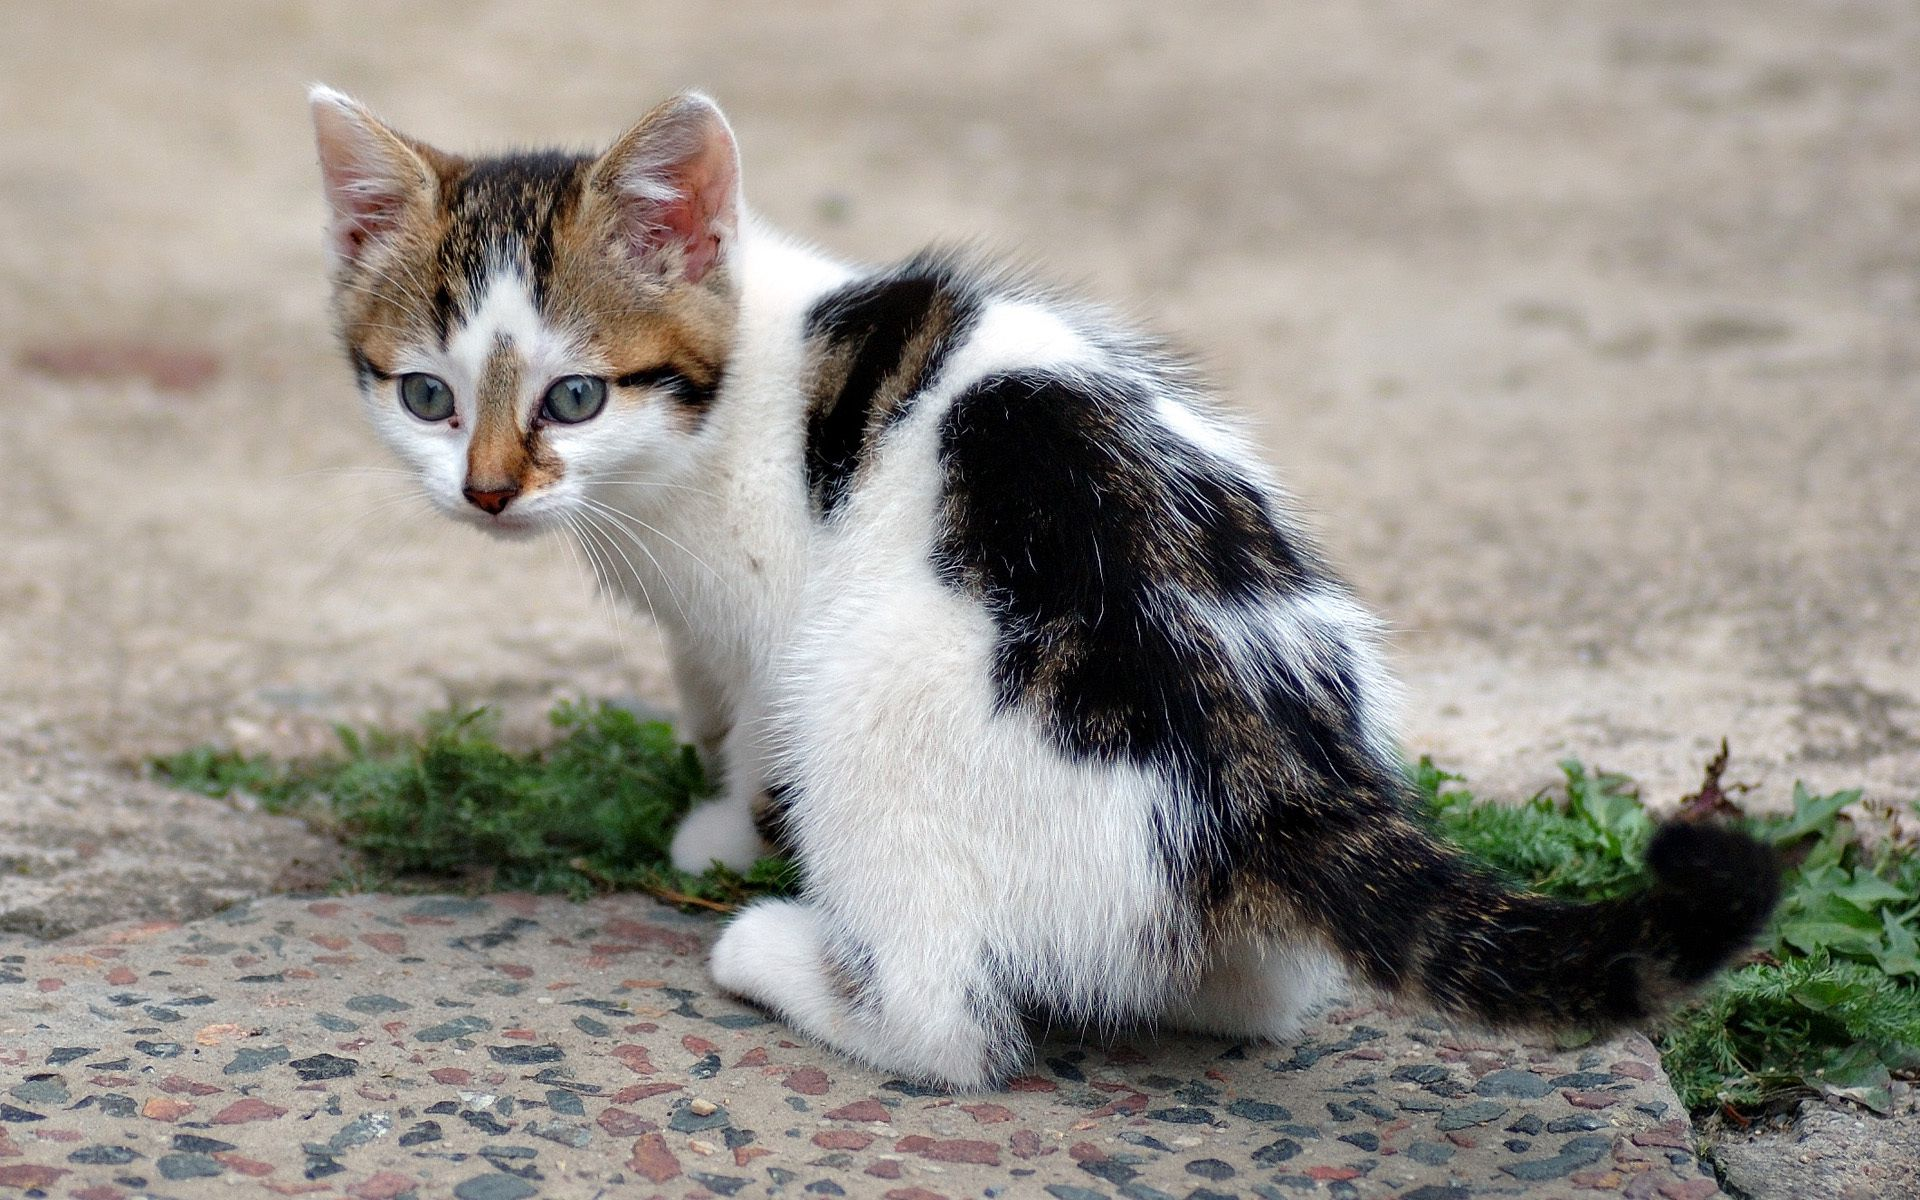 145607 download wallpaper Animals, Kitty, Kitten, Spotted, Spotty, Grass, Asphalt screensavers and pictures for free